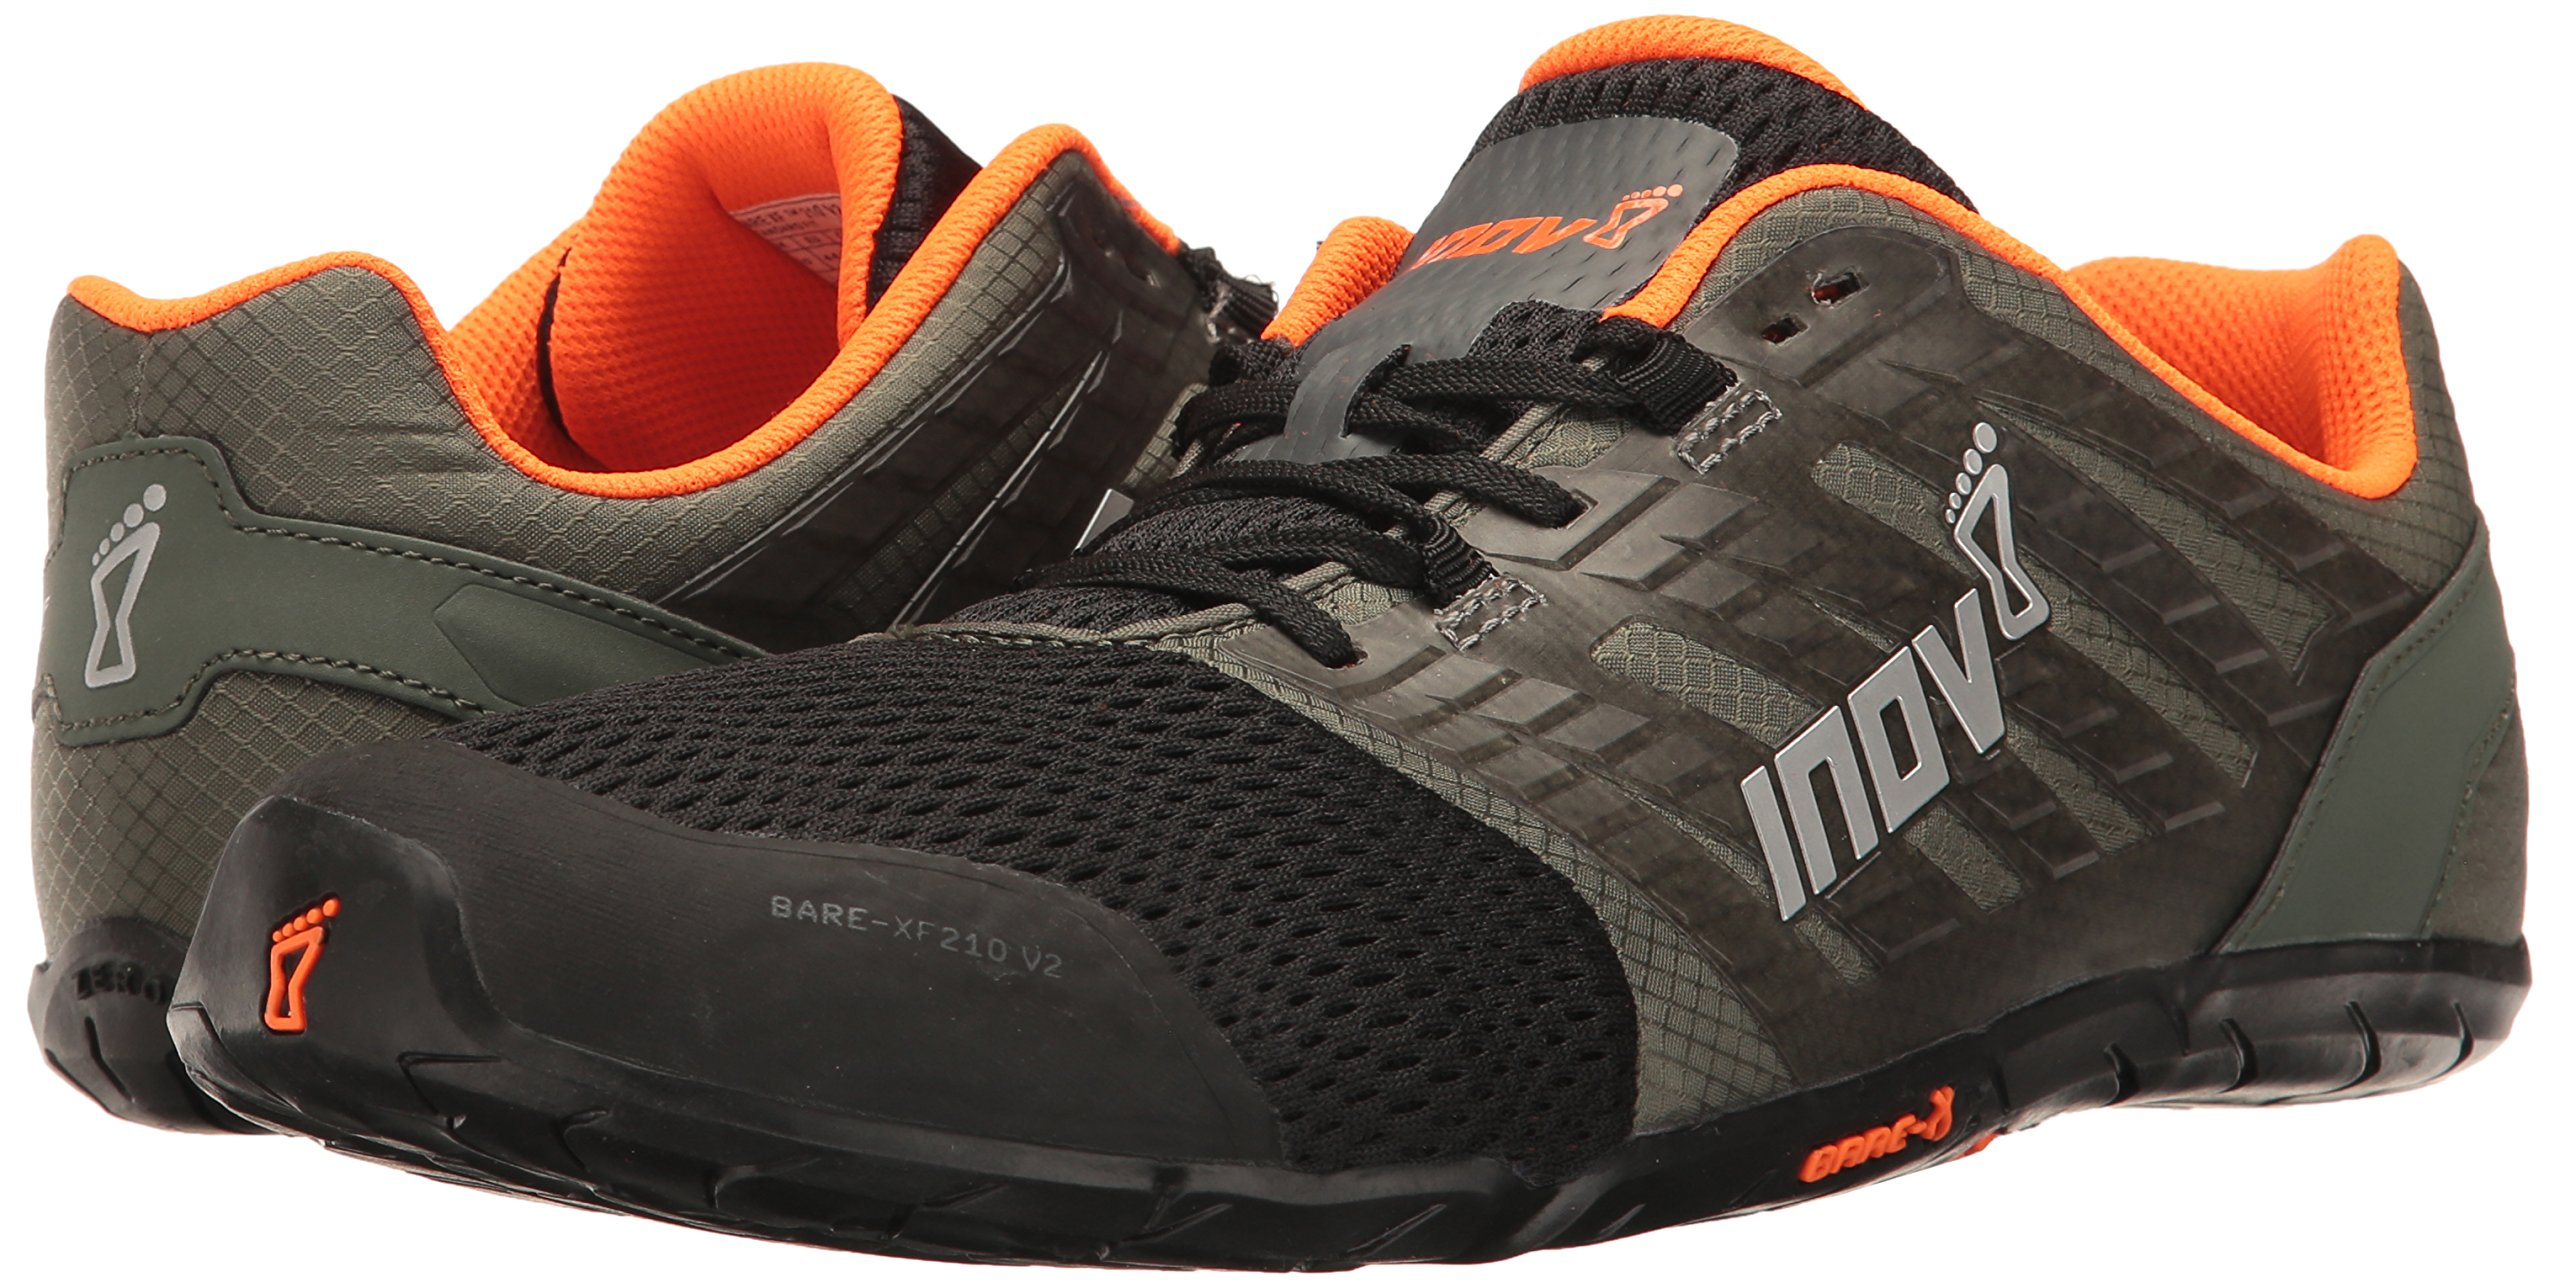 Inov-8 Men's Bare-XF 210 v2 (M) Cross Trainer Grey/Black/Orange 11 D US by Inov-8 (Image #6)